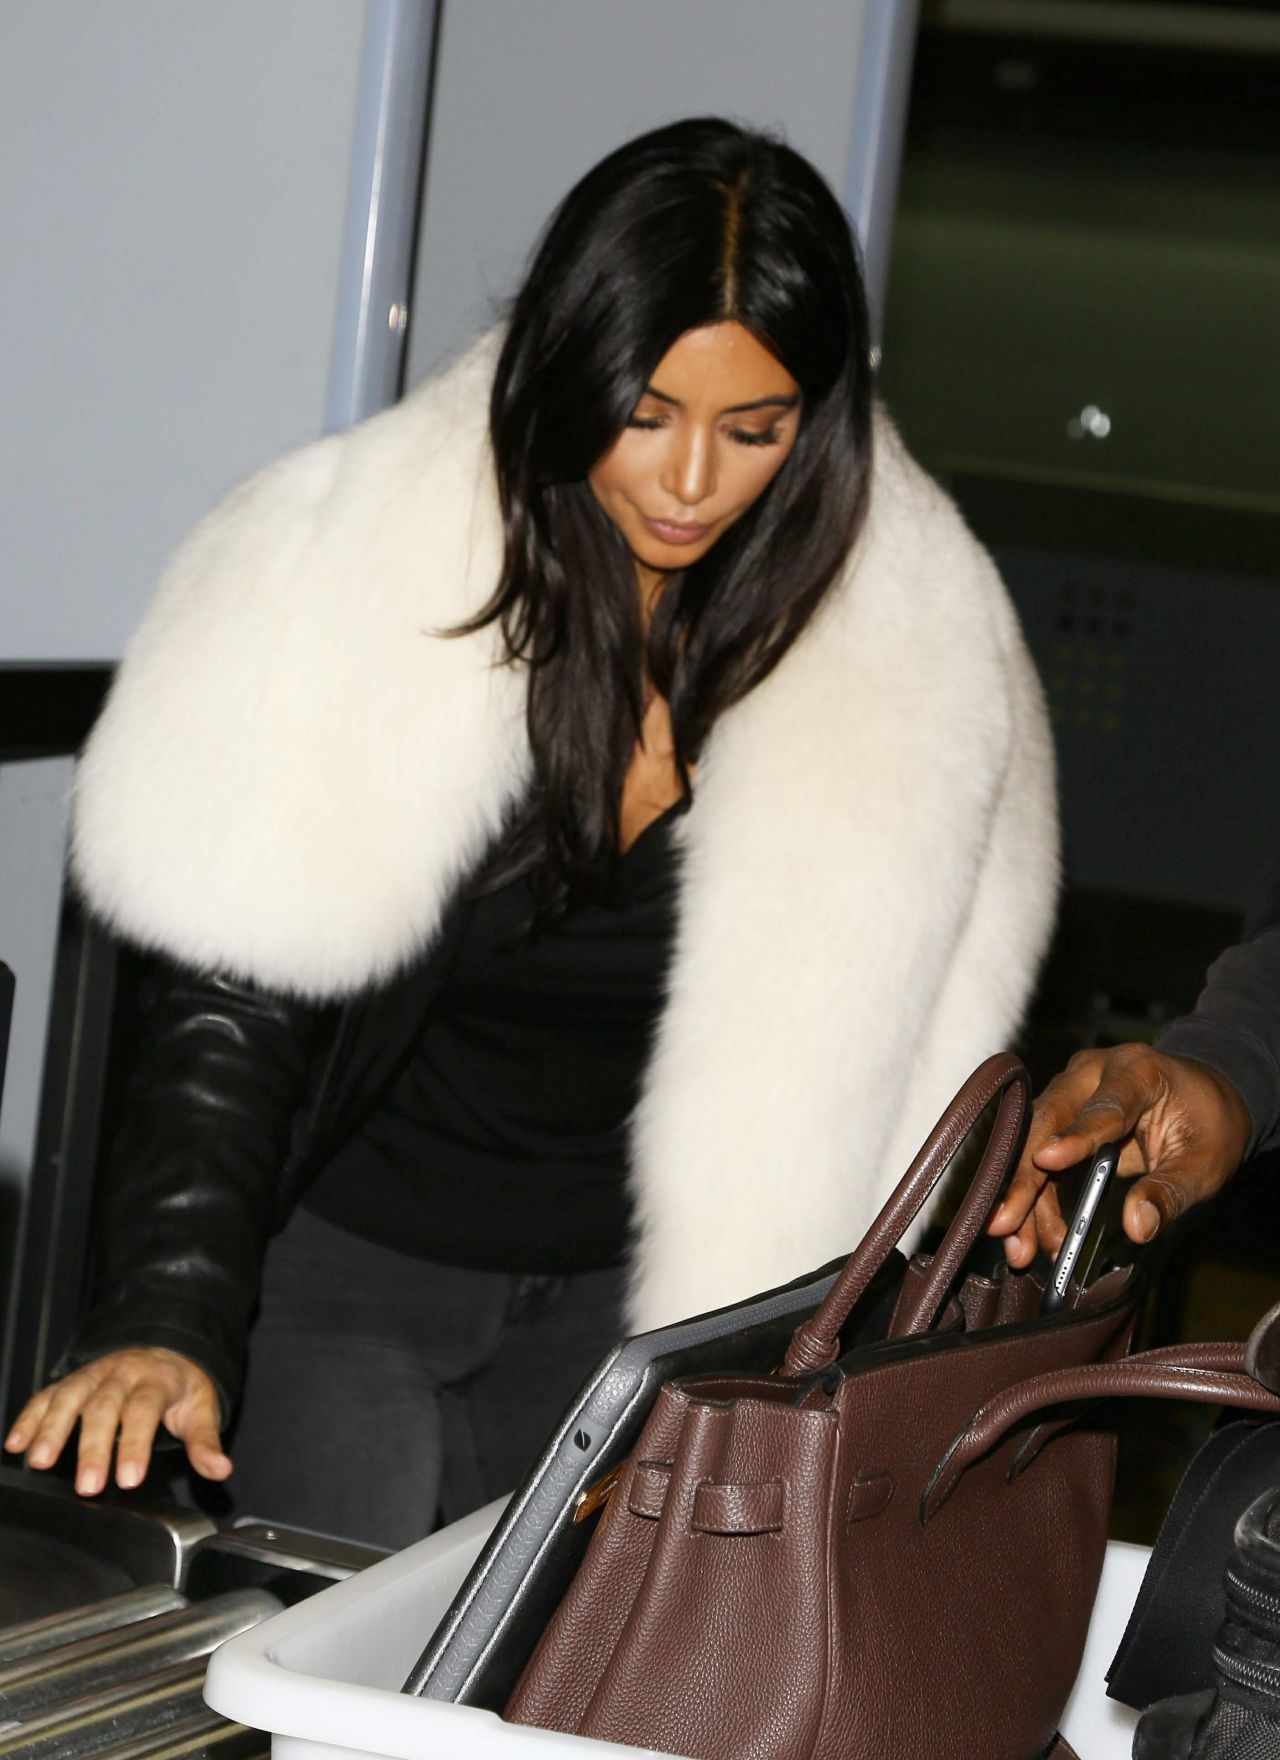 Kim Kardashian 2015 Celebrity Photos Street Style At Lax Airport In Los Angeles January